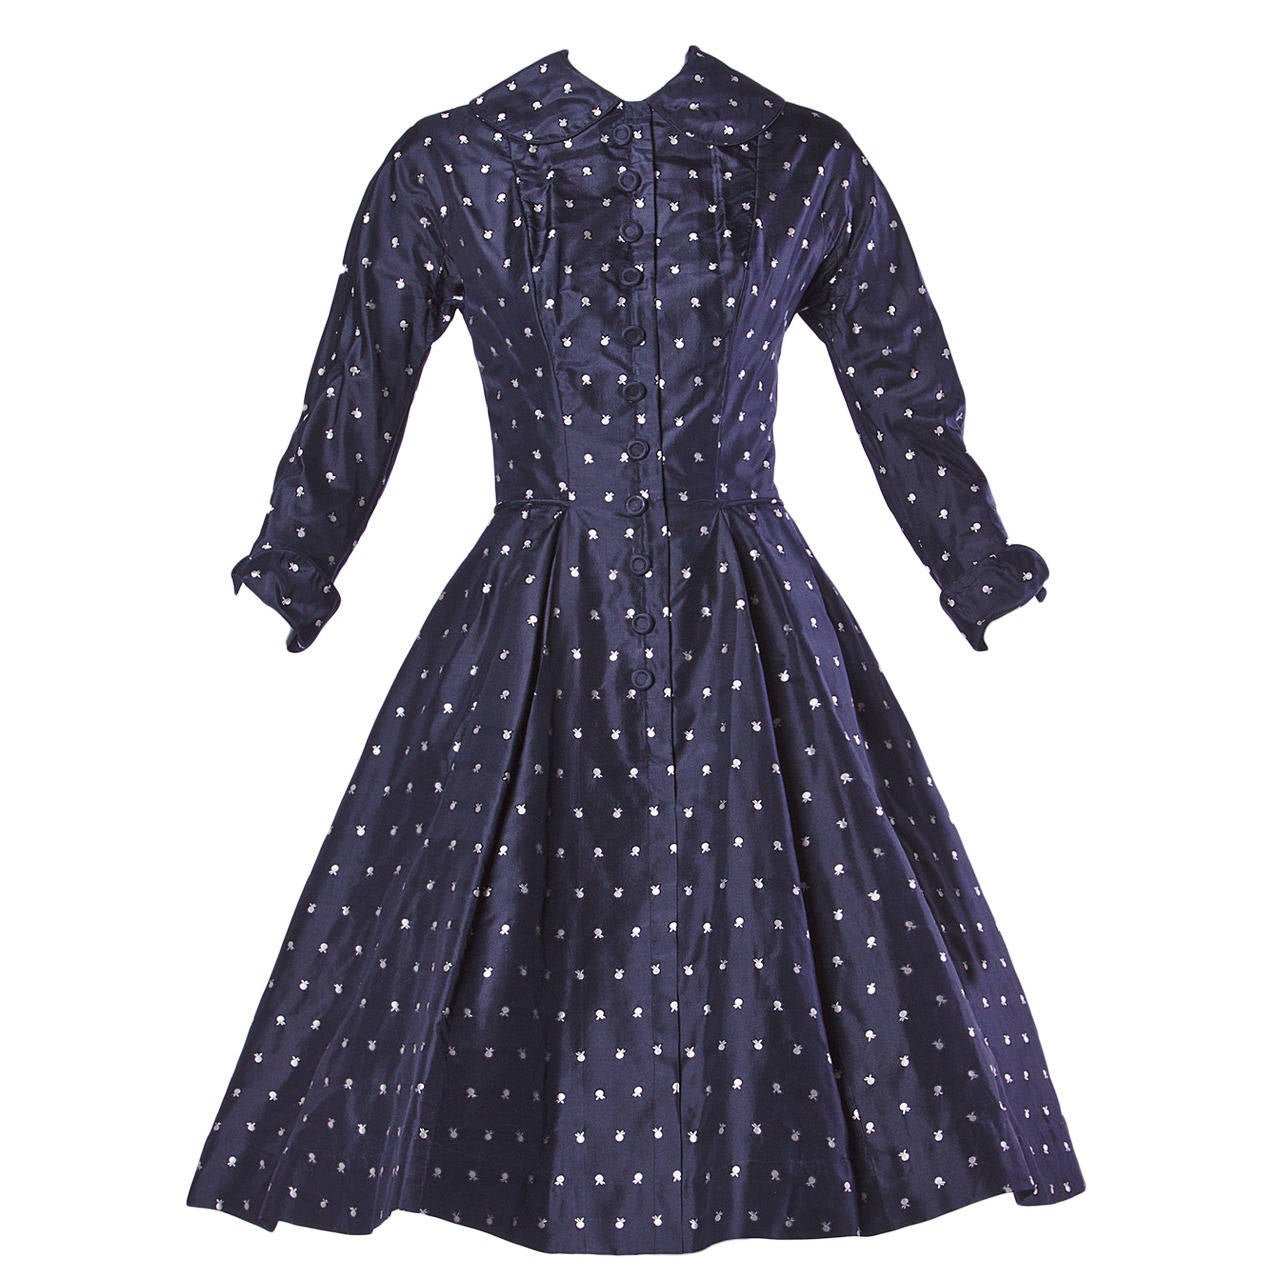 Ceil Chapman Vintage 1950s 50s Fruit Print Navy Silk Dress with Box Pleats For Sale